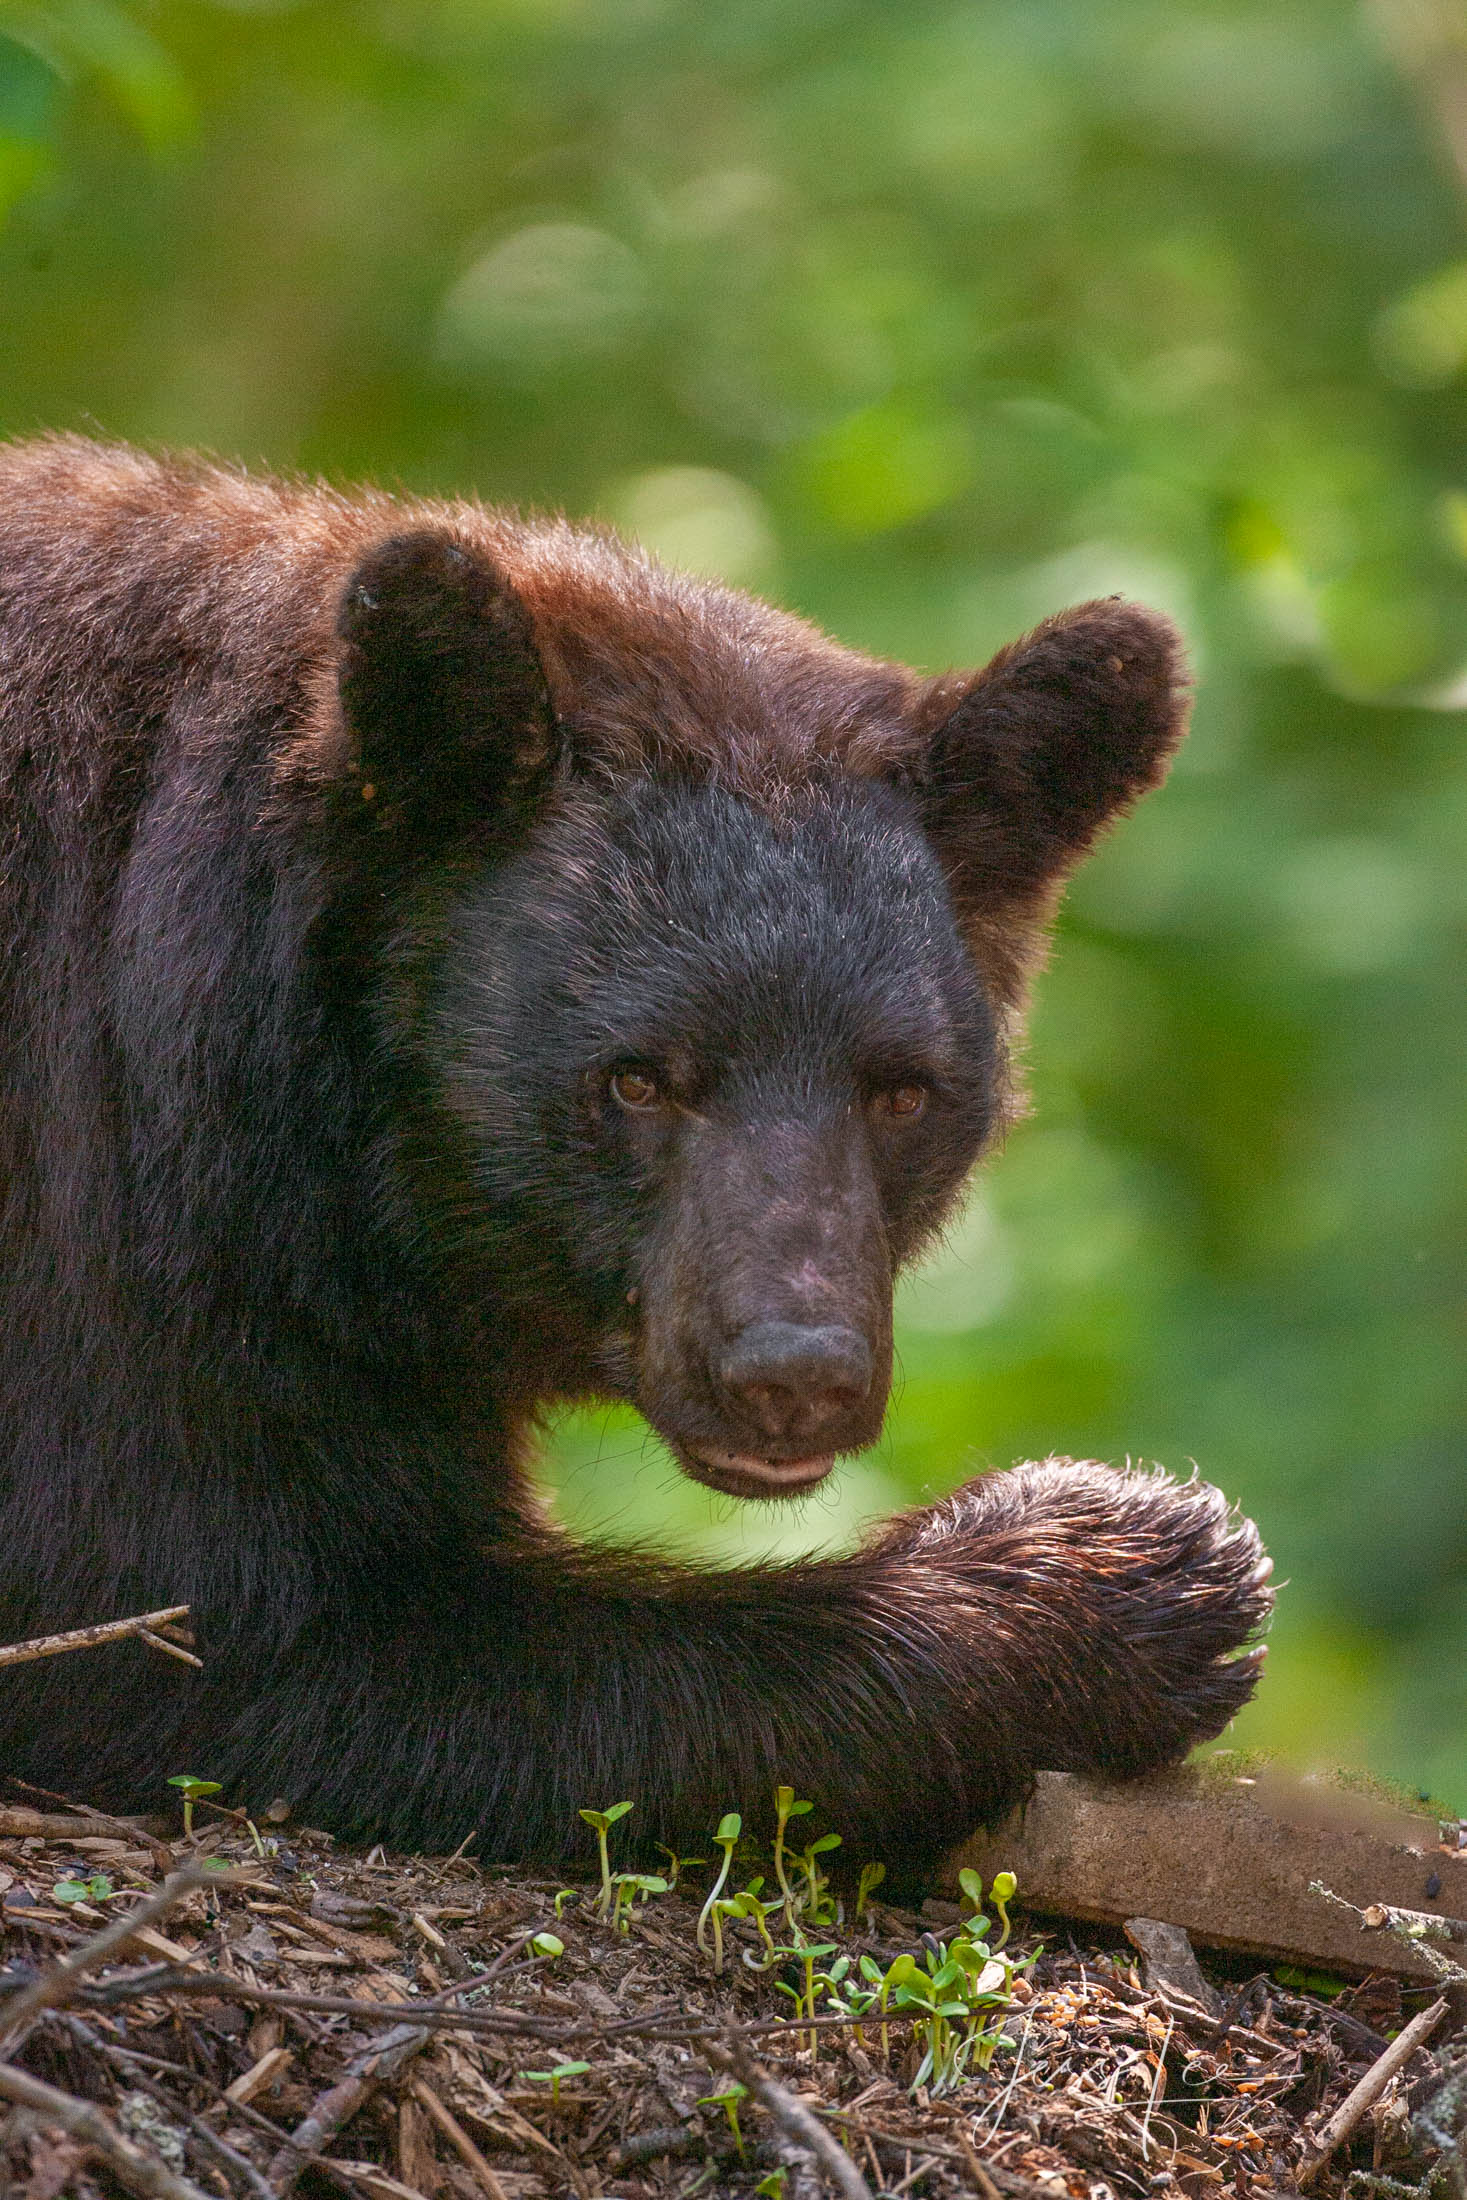 Black Bear Stare Photo  Limited Edition Picture of 100 prints These bear photographs are offered as high-quality prints for sale...